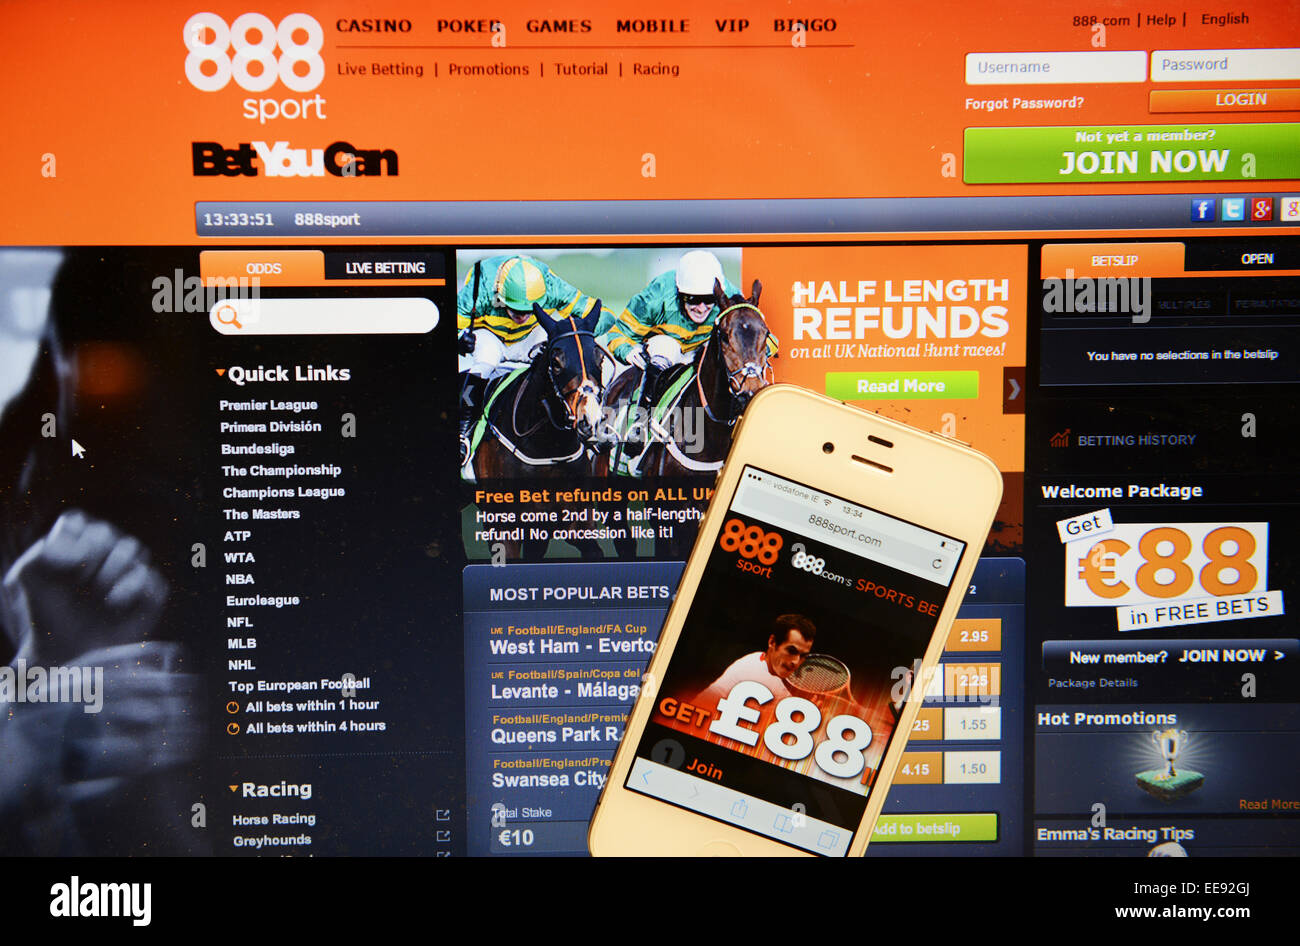 888 sport website and IPhone - Stock Image